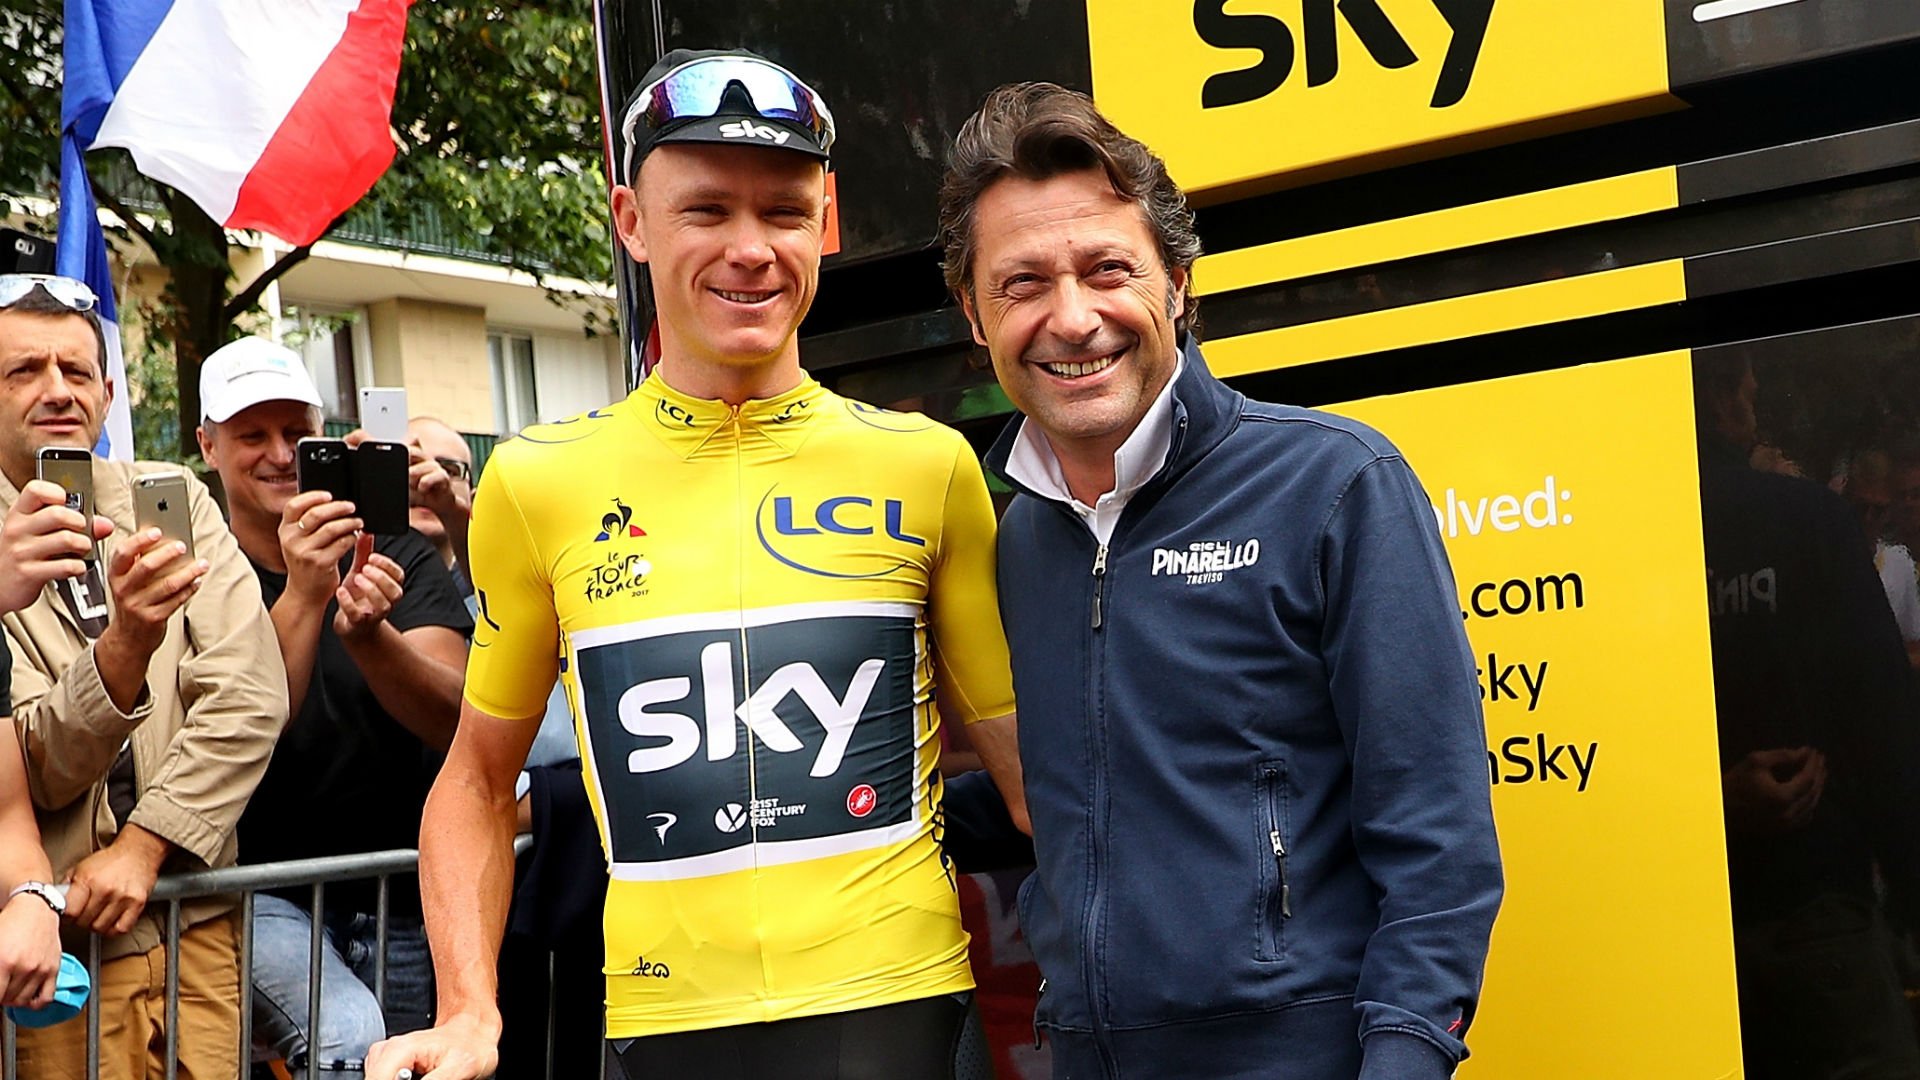 The chief executive of Team Sky's bike sponsors said he has taken plenty of calls from people keen to be part of the team's future.